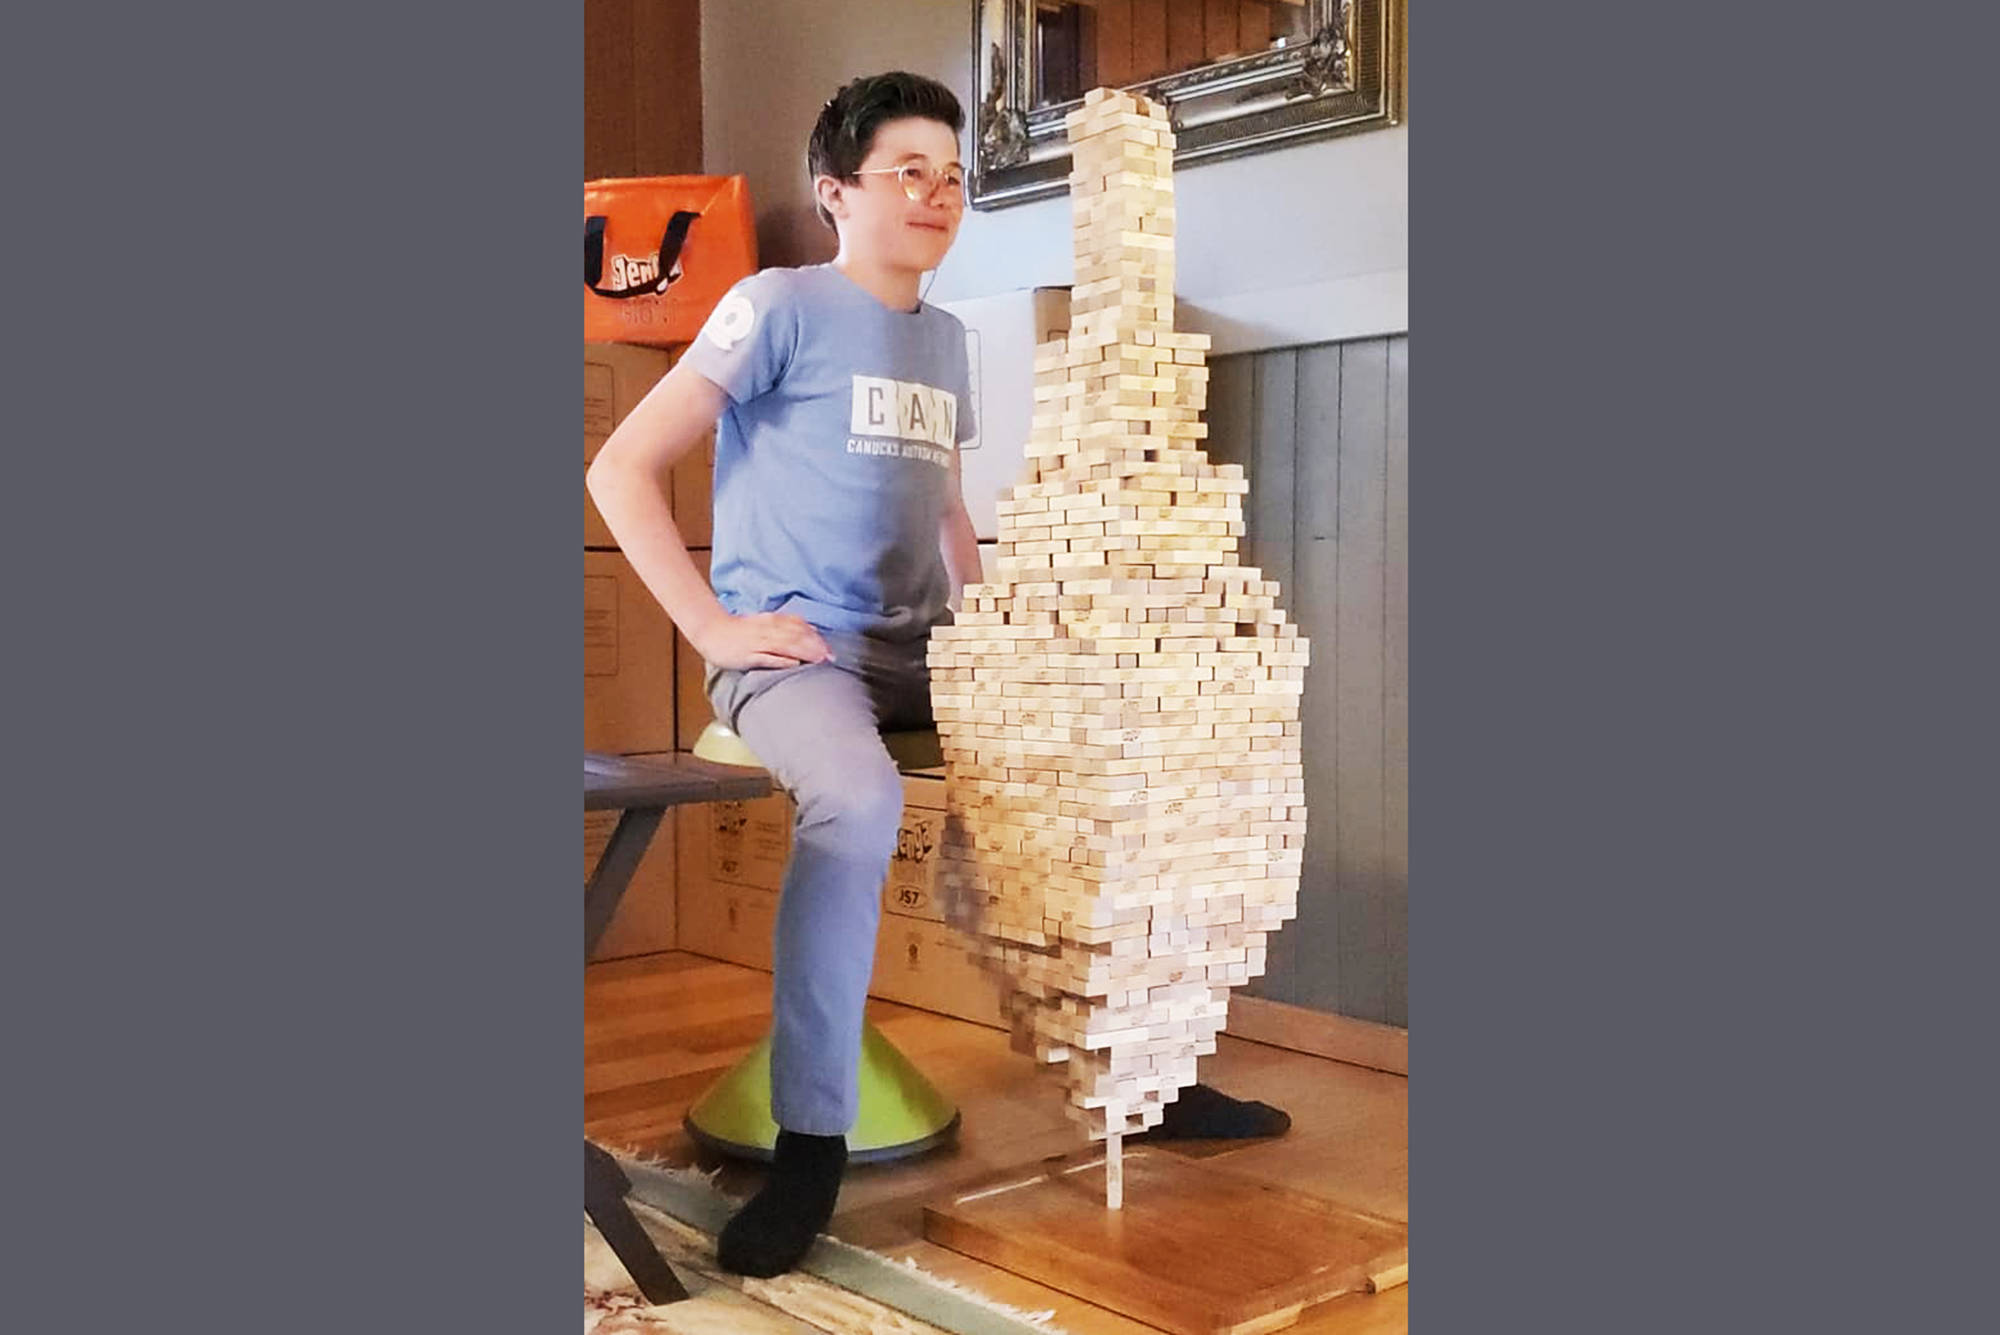 On March 27, Salmon Arm's Auldin Maxwell smashed his own Jenga stacking world record with a tower of 1,400 blocks held up by one vertical brick. (Contributed)